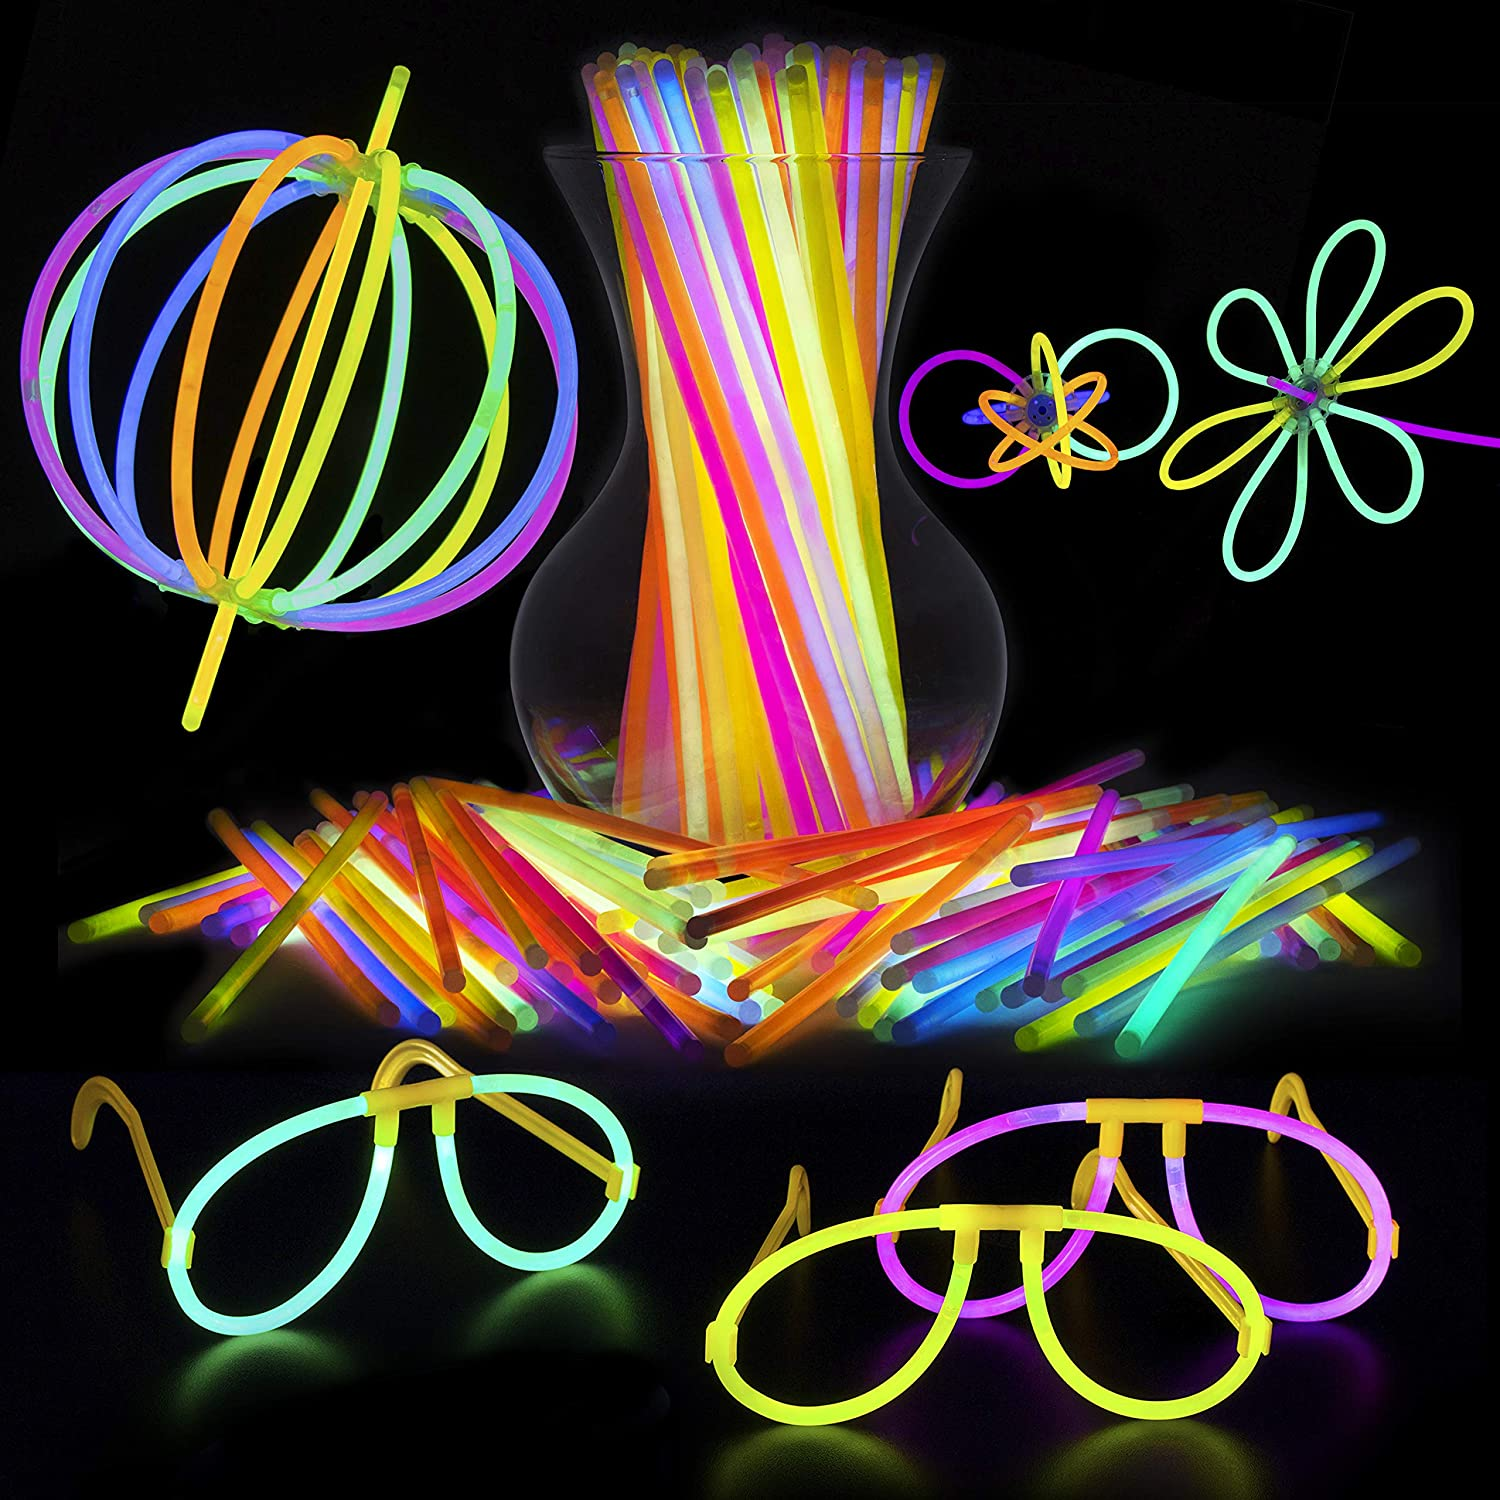 PartySticks Glow Sticks Jewelry Bulk Party Favors 100pk 8 Glow in the Dark Light Up Party Supplies Glow Necklaces or Glow Glasses with Connectors